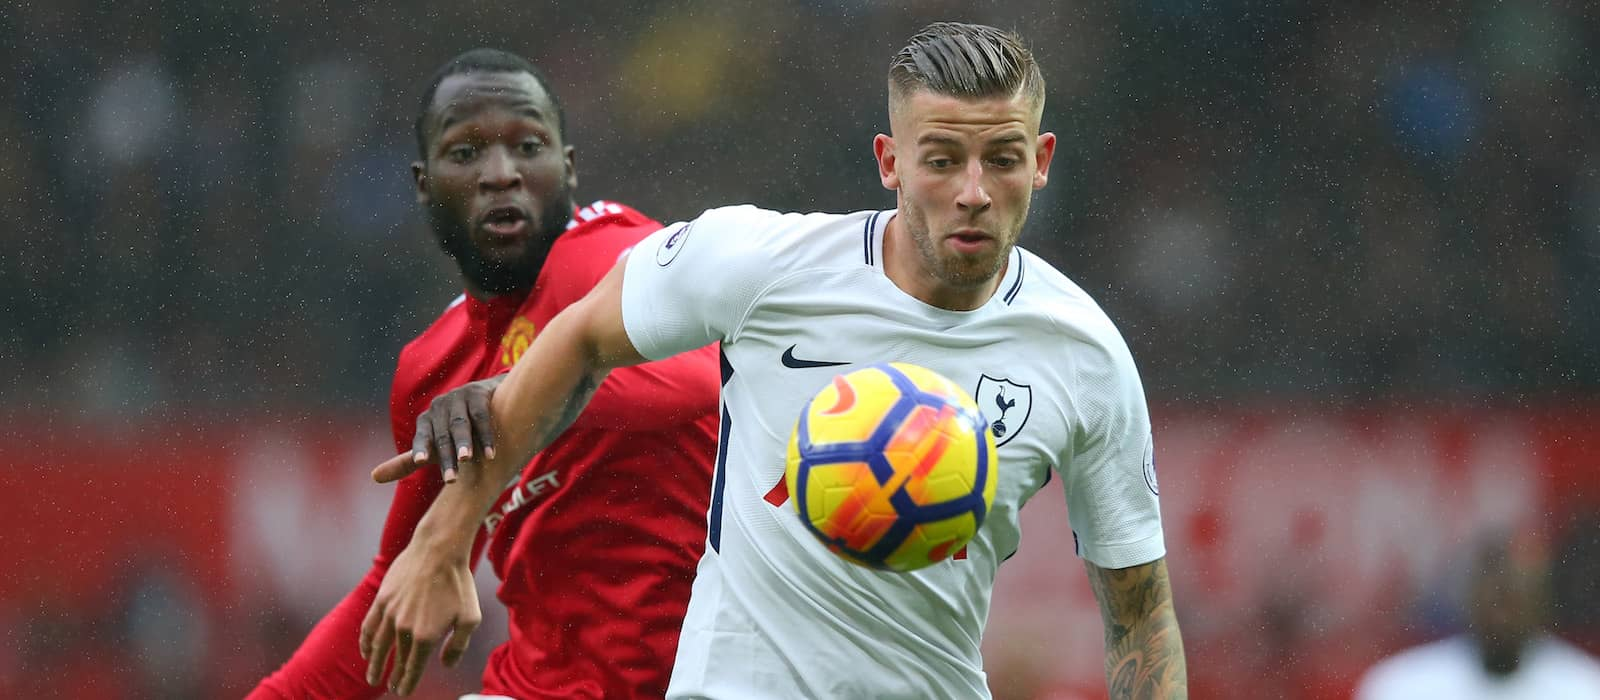 Manchester United to face stiff competition for Toby Alderweireld signing – report